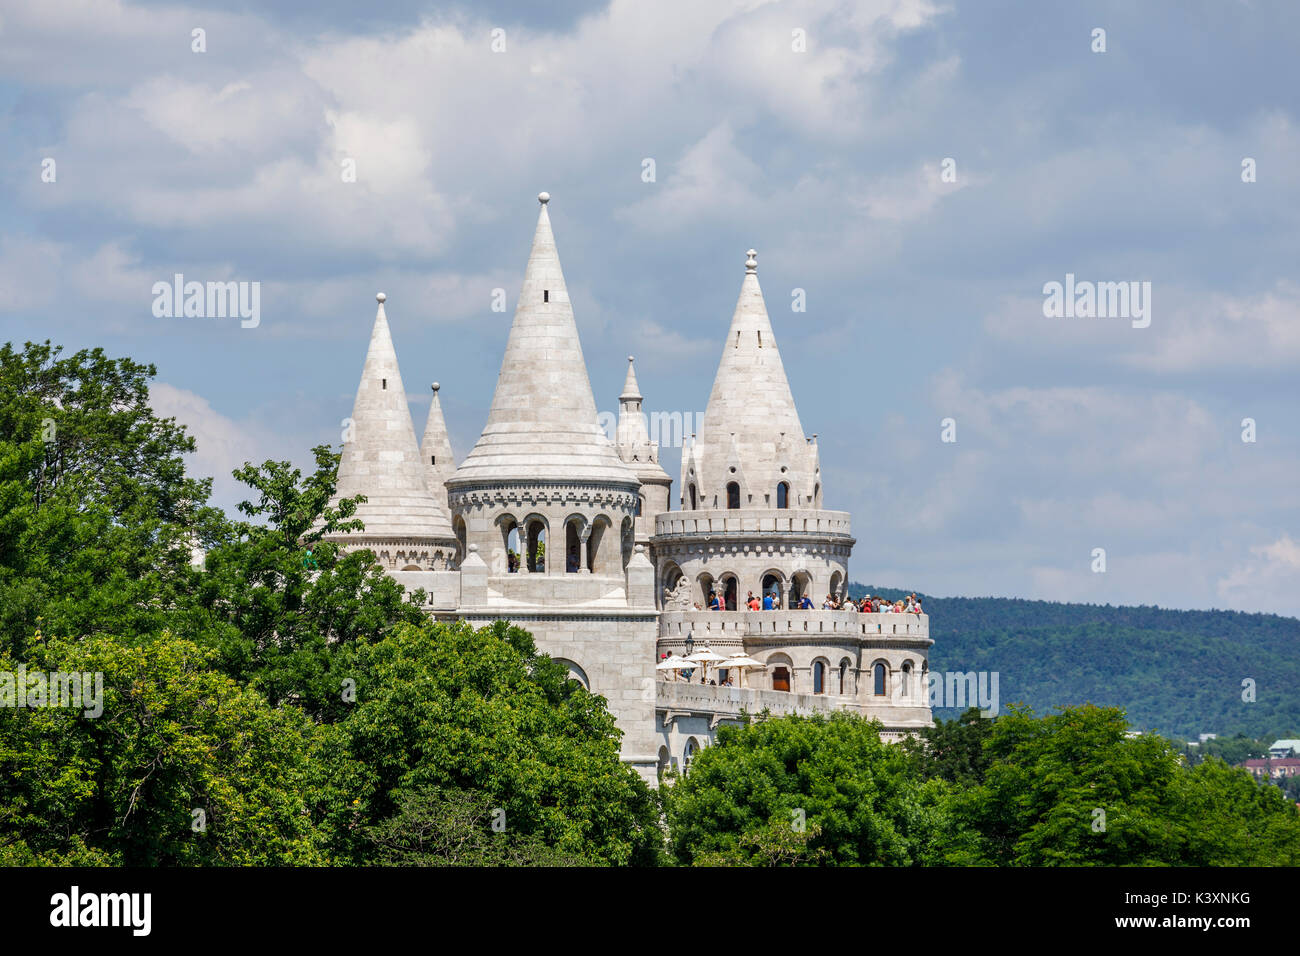 View of the towers of the iconic landmark, Fisherman's Bastion on Castle Hill, Buda, Budapest, capital city of Hungary, central Europe - Stock Image